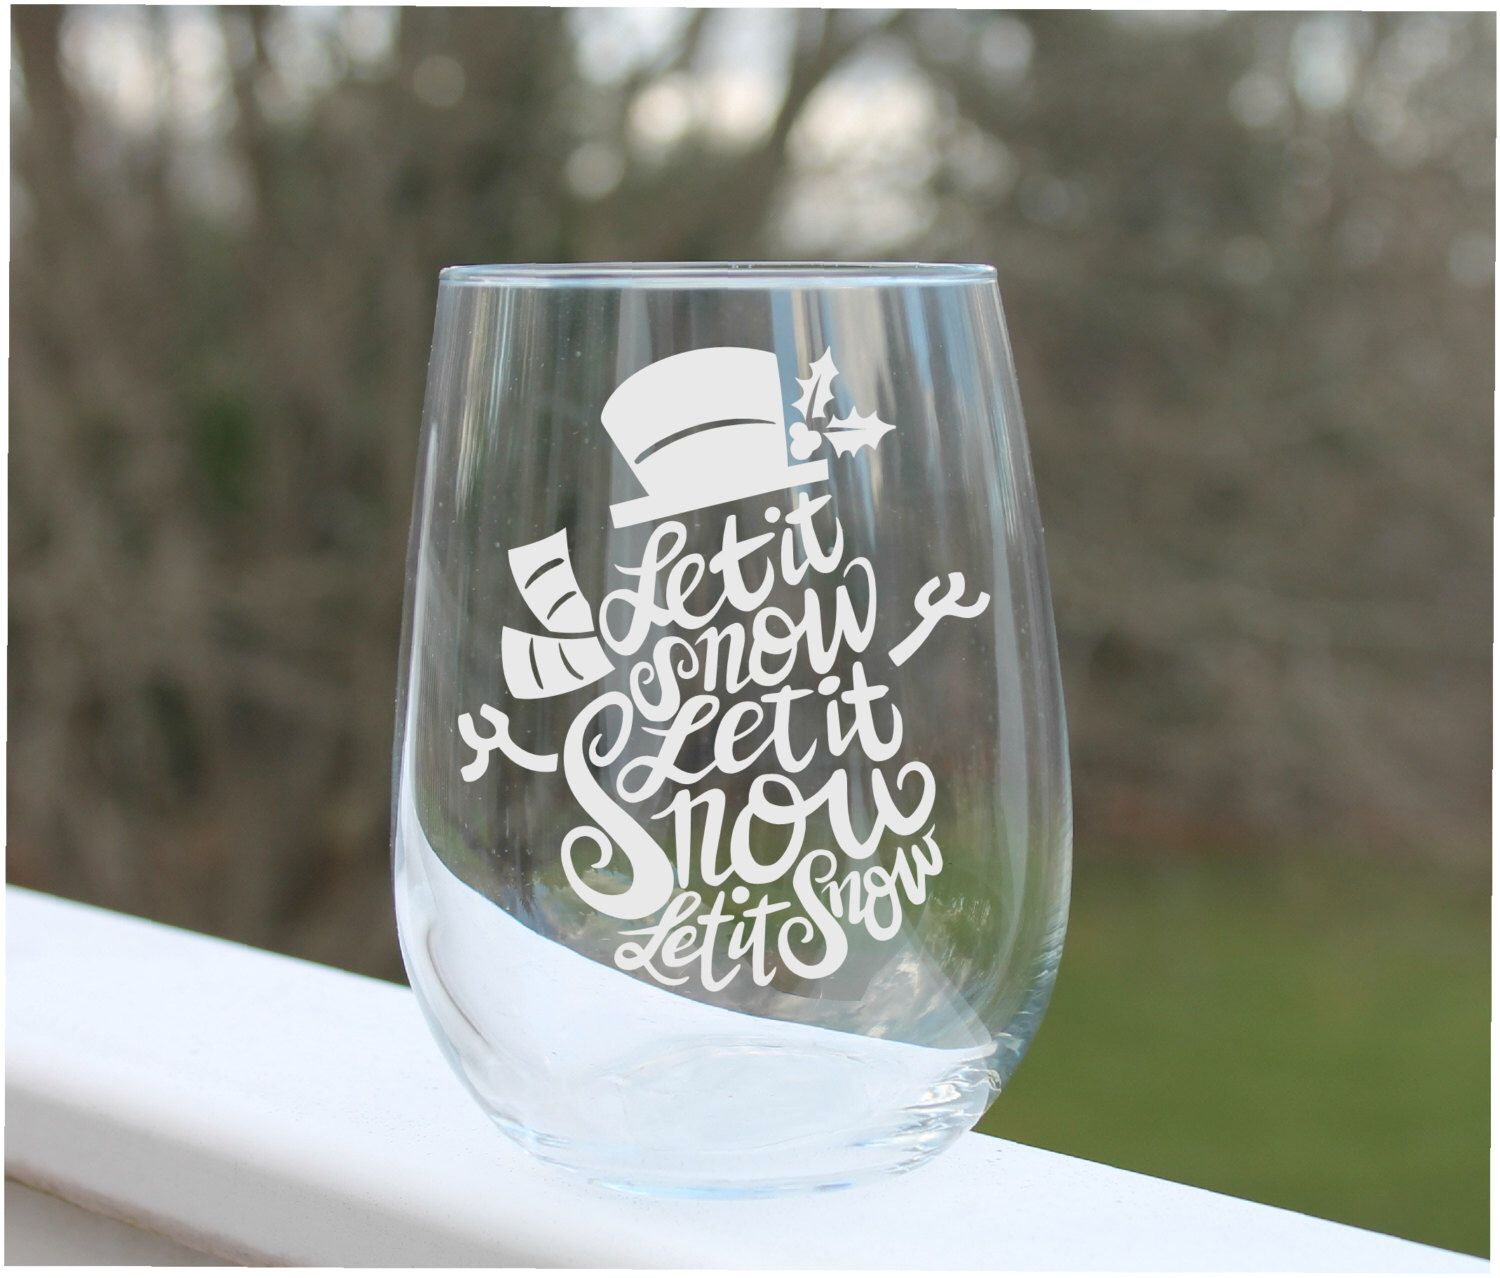 Pin by Stone Effects - Personalized Gifts on FUN WINE ...